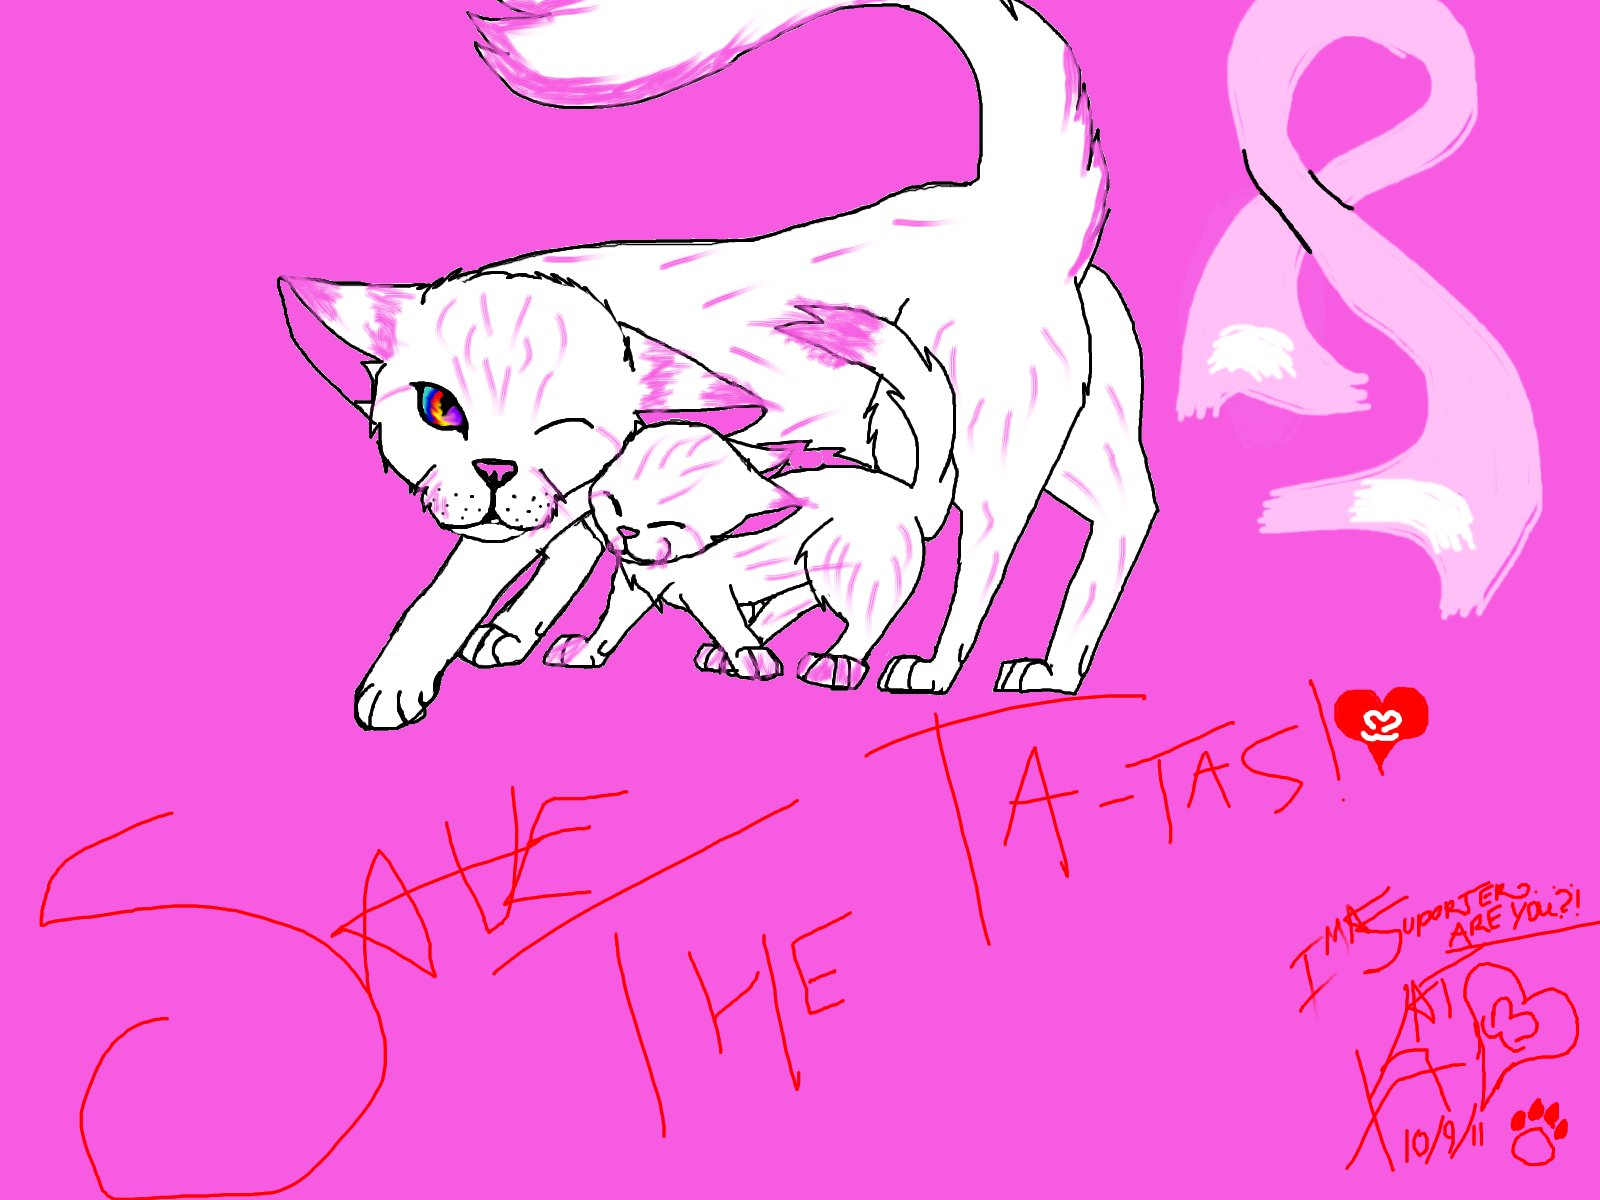 Kittys for breast cancer